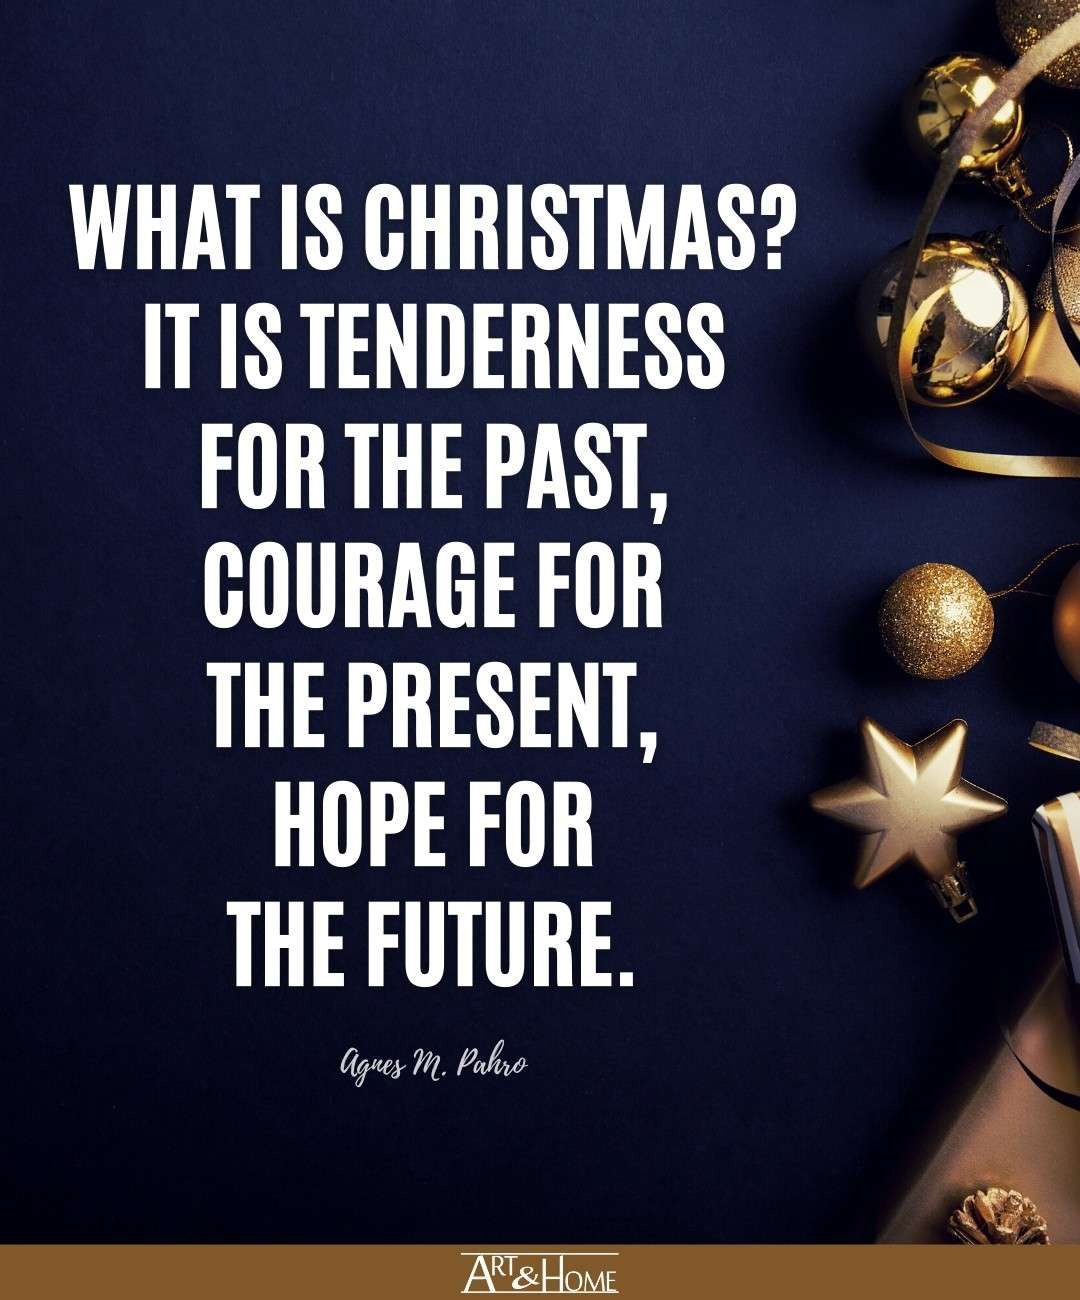 What is Christmas? It is tenderness for the past, courage for the present, hope for the future. Agnes M. Pahro quote.